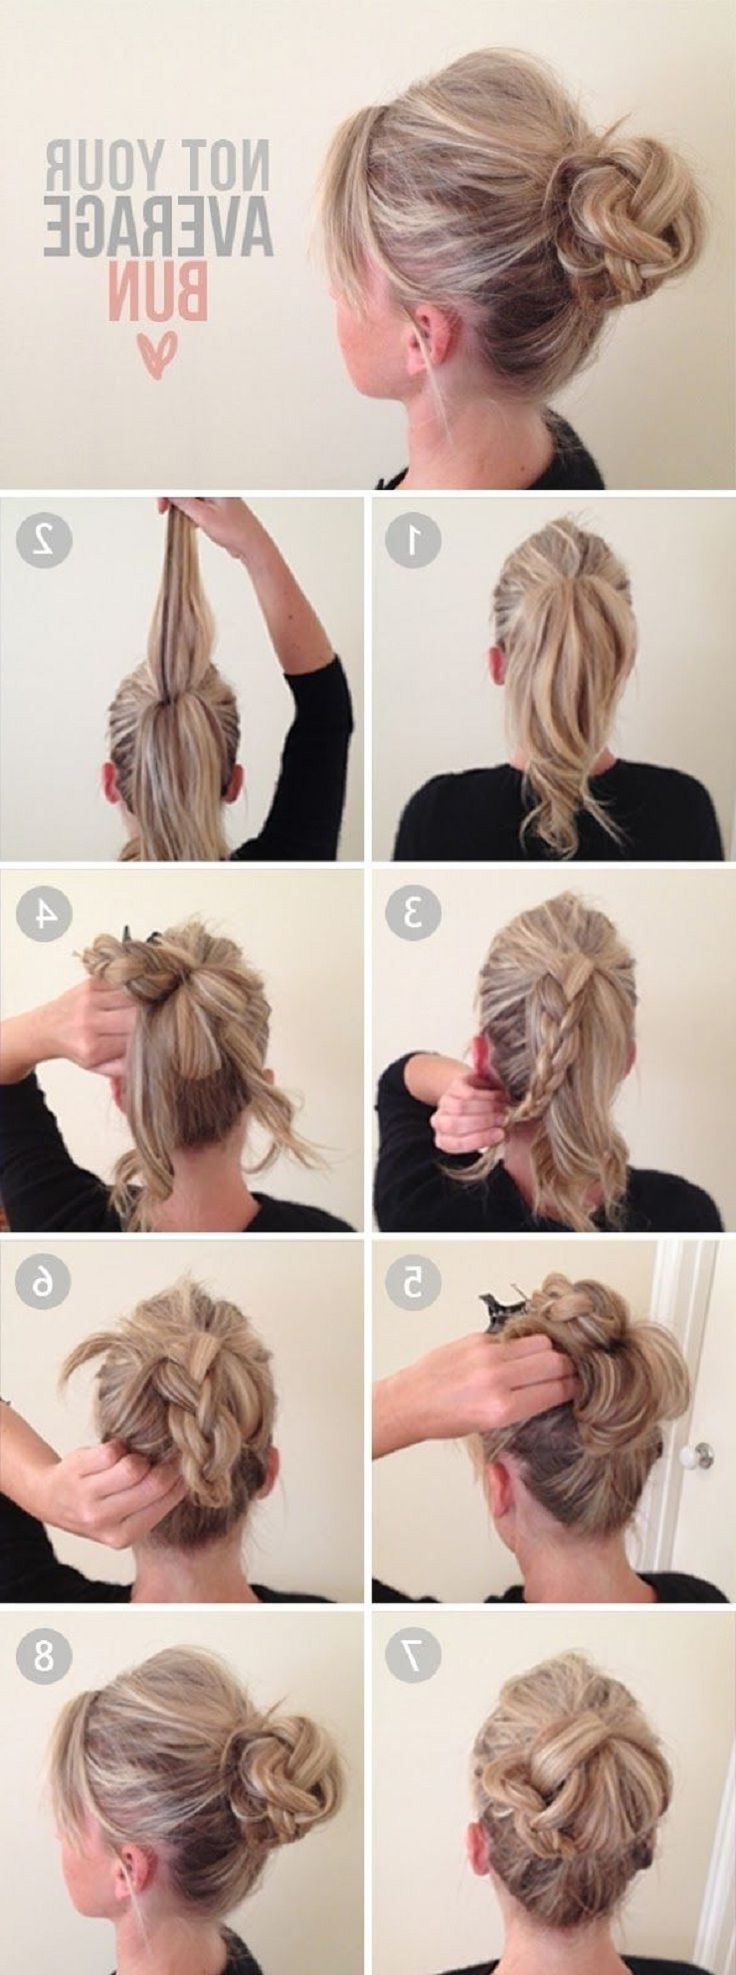 Most Popular Twin Braid Updo Ponytail Hairstyles Pertaining To 14 Amazing Double Braid Bun Hairstyles – Pretty Designs (View 15 of 20)